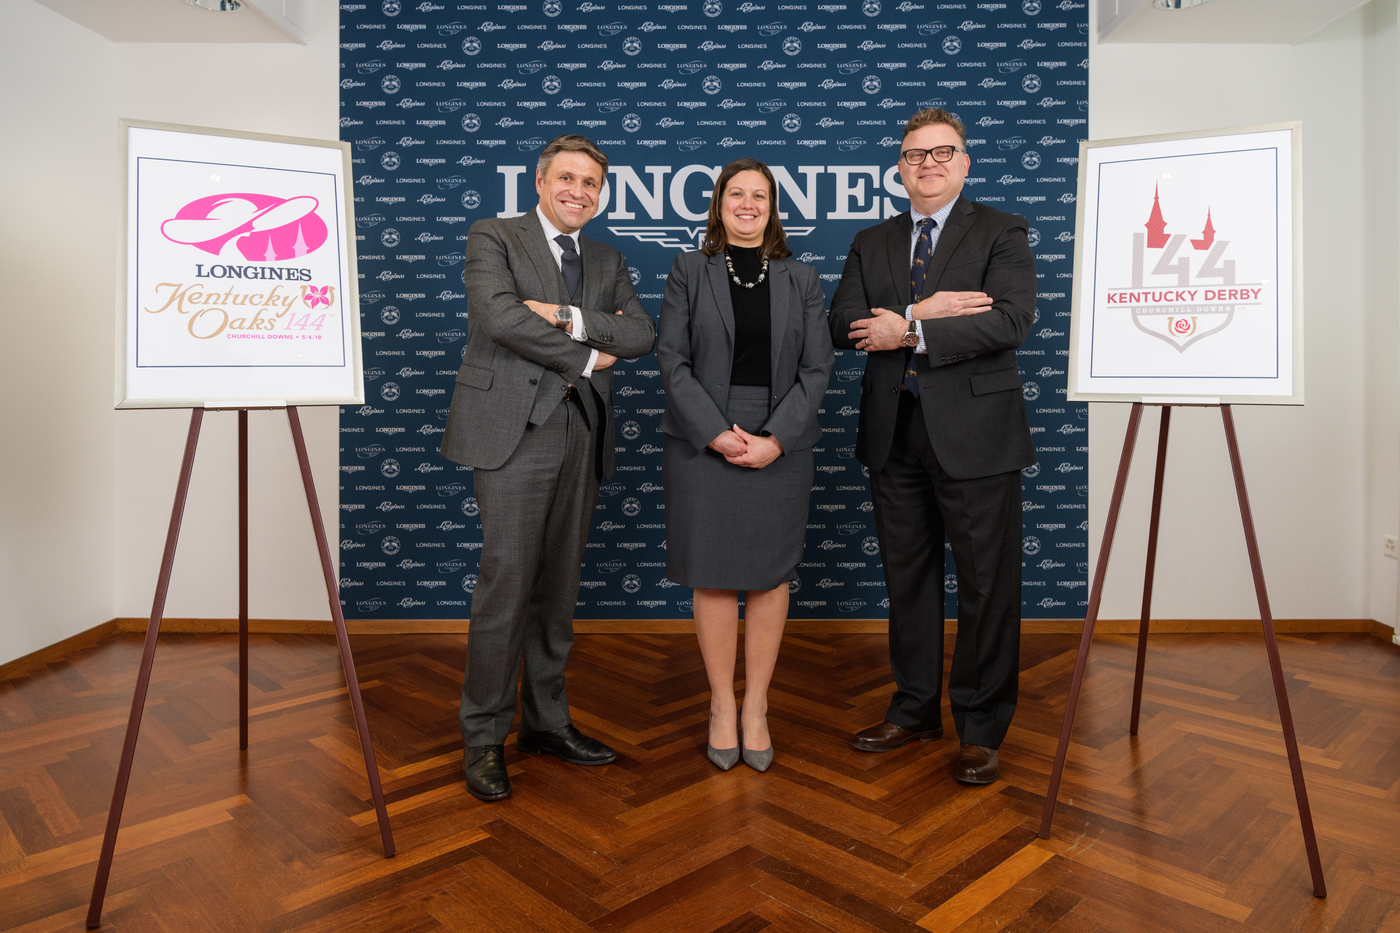 Longines Flat Racing Event: Longines renews its partnership with Churchill Downs as Official Timekeeper of the Kentucky Derby® and unveils the new Longines Kentucky Oaks logo 4